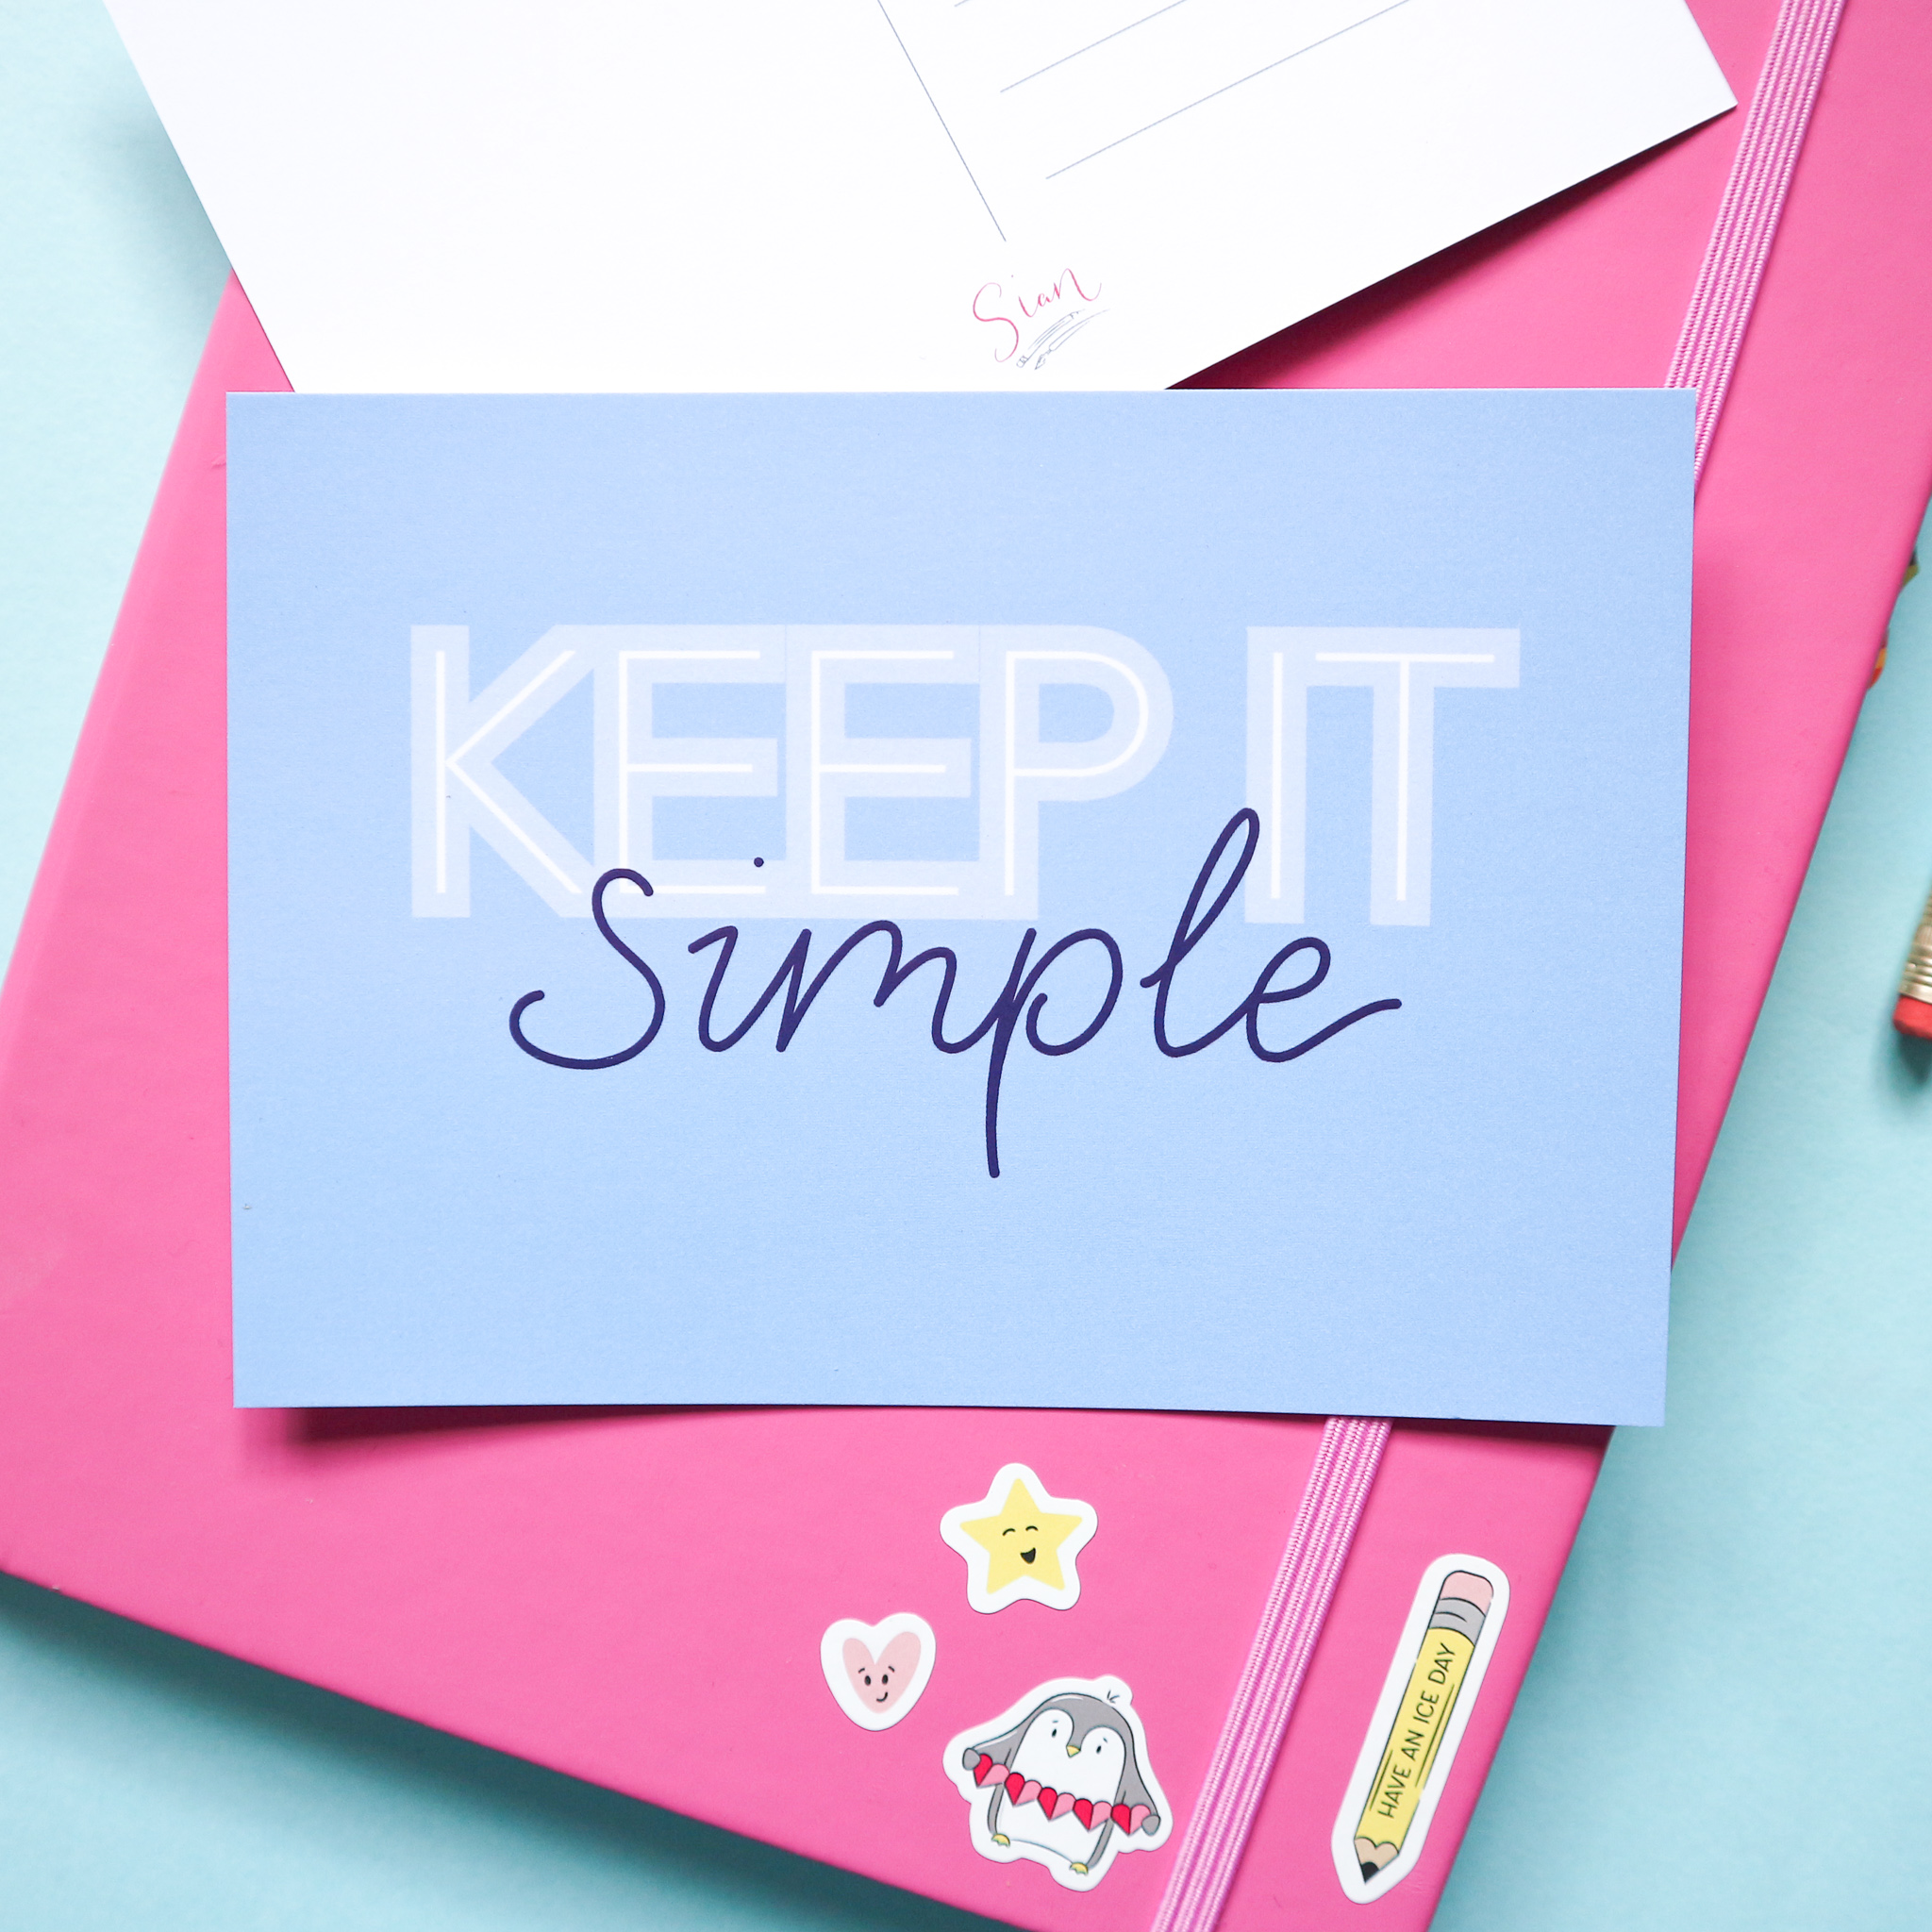 Keep it simple postcard design by Sian Shrimpton